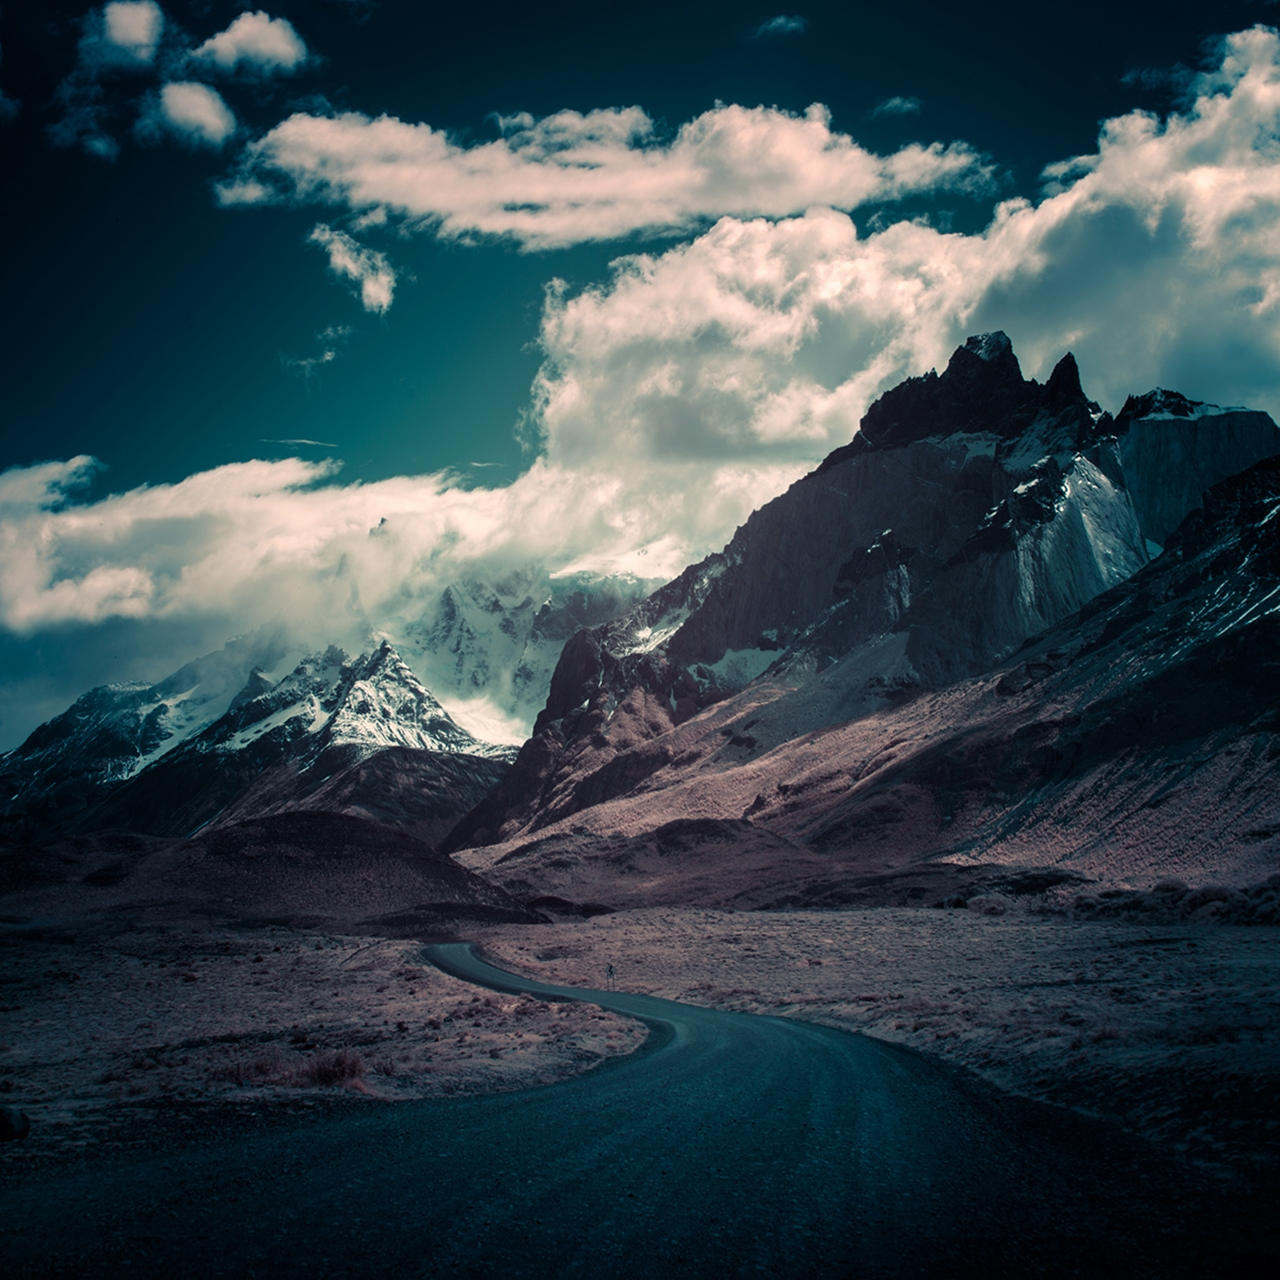 The beautiful scenery mountains Chile photos Andy Lee 11